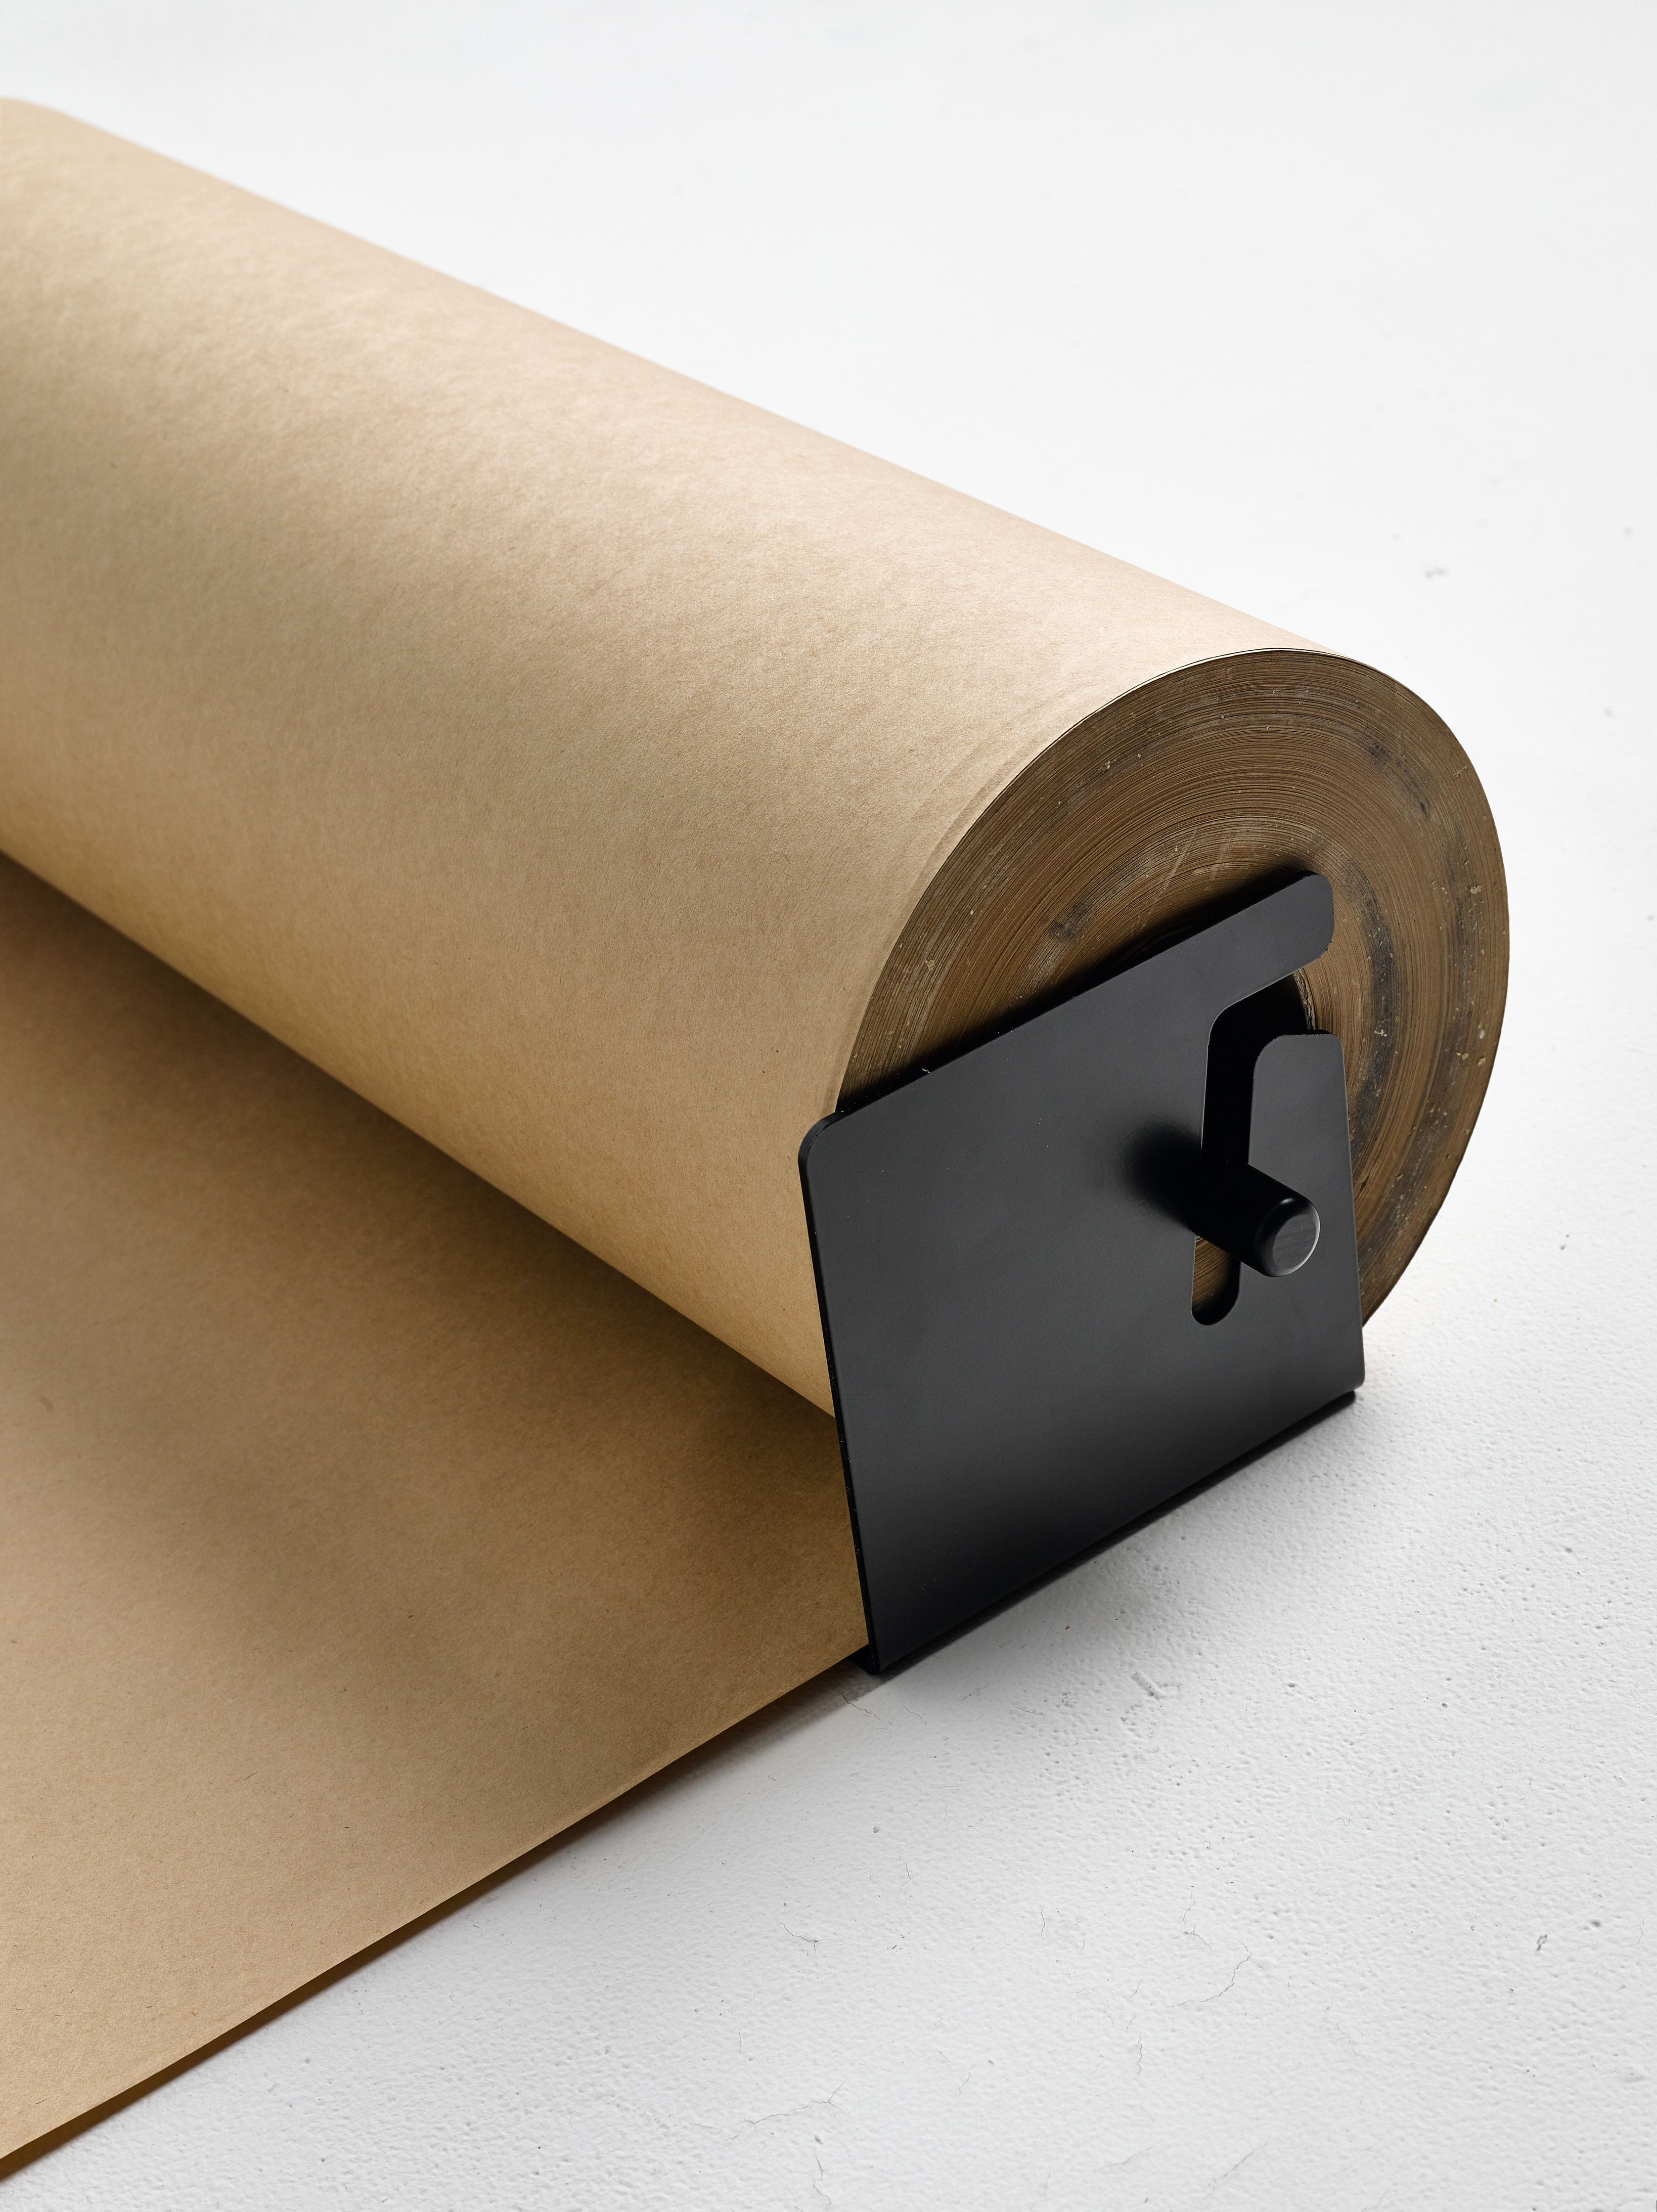 Studio Roller | Pinterest | Paper, Products and Rollers